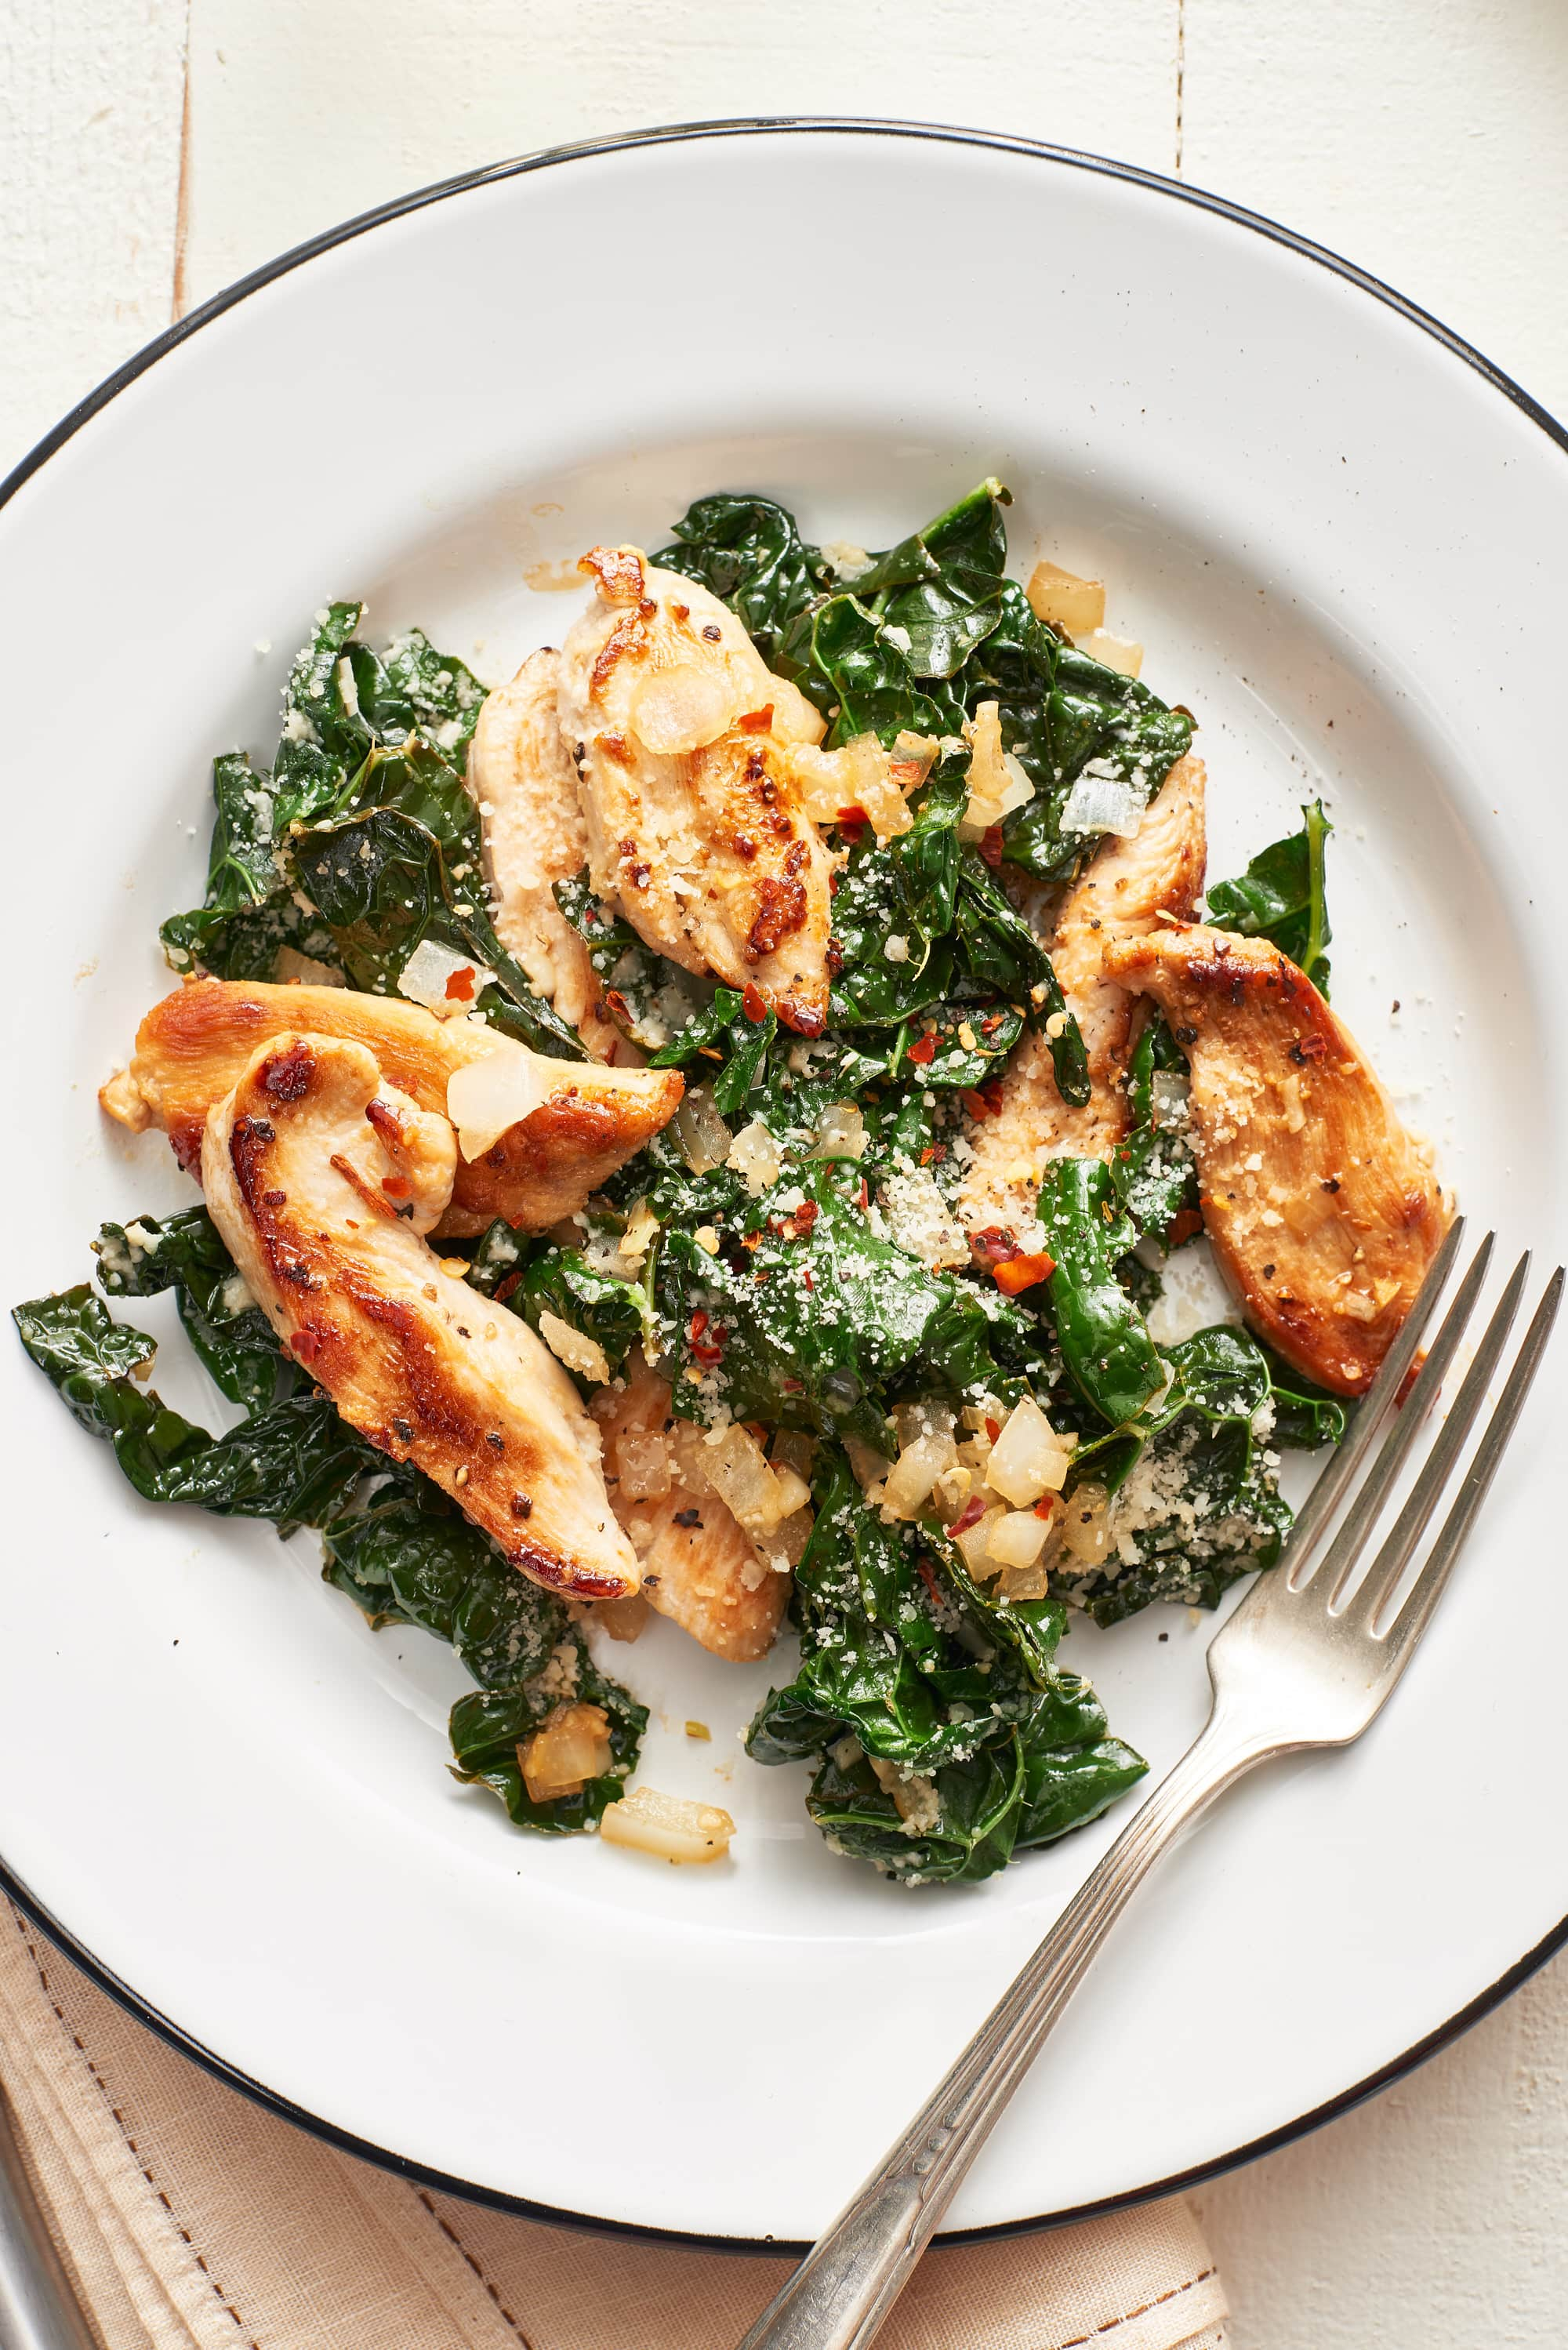 Chicken and Kale Sauté